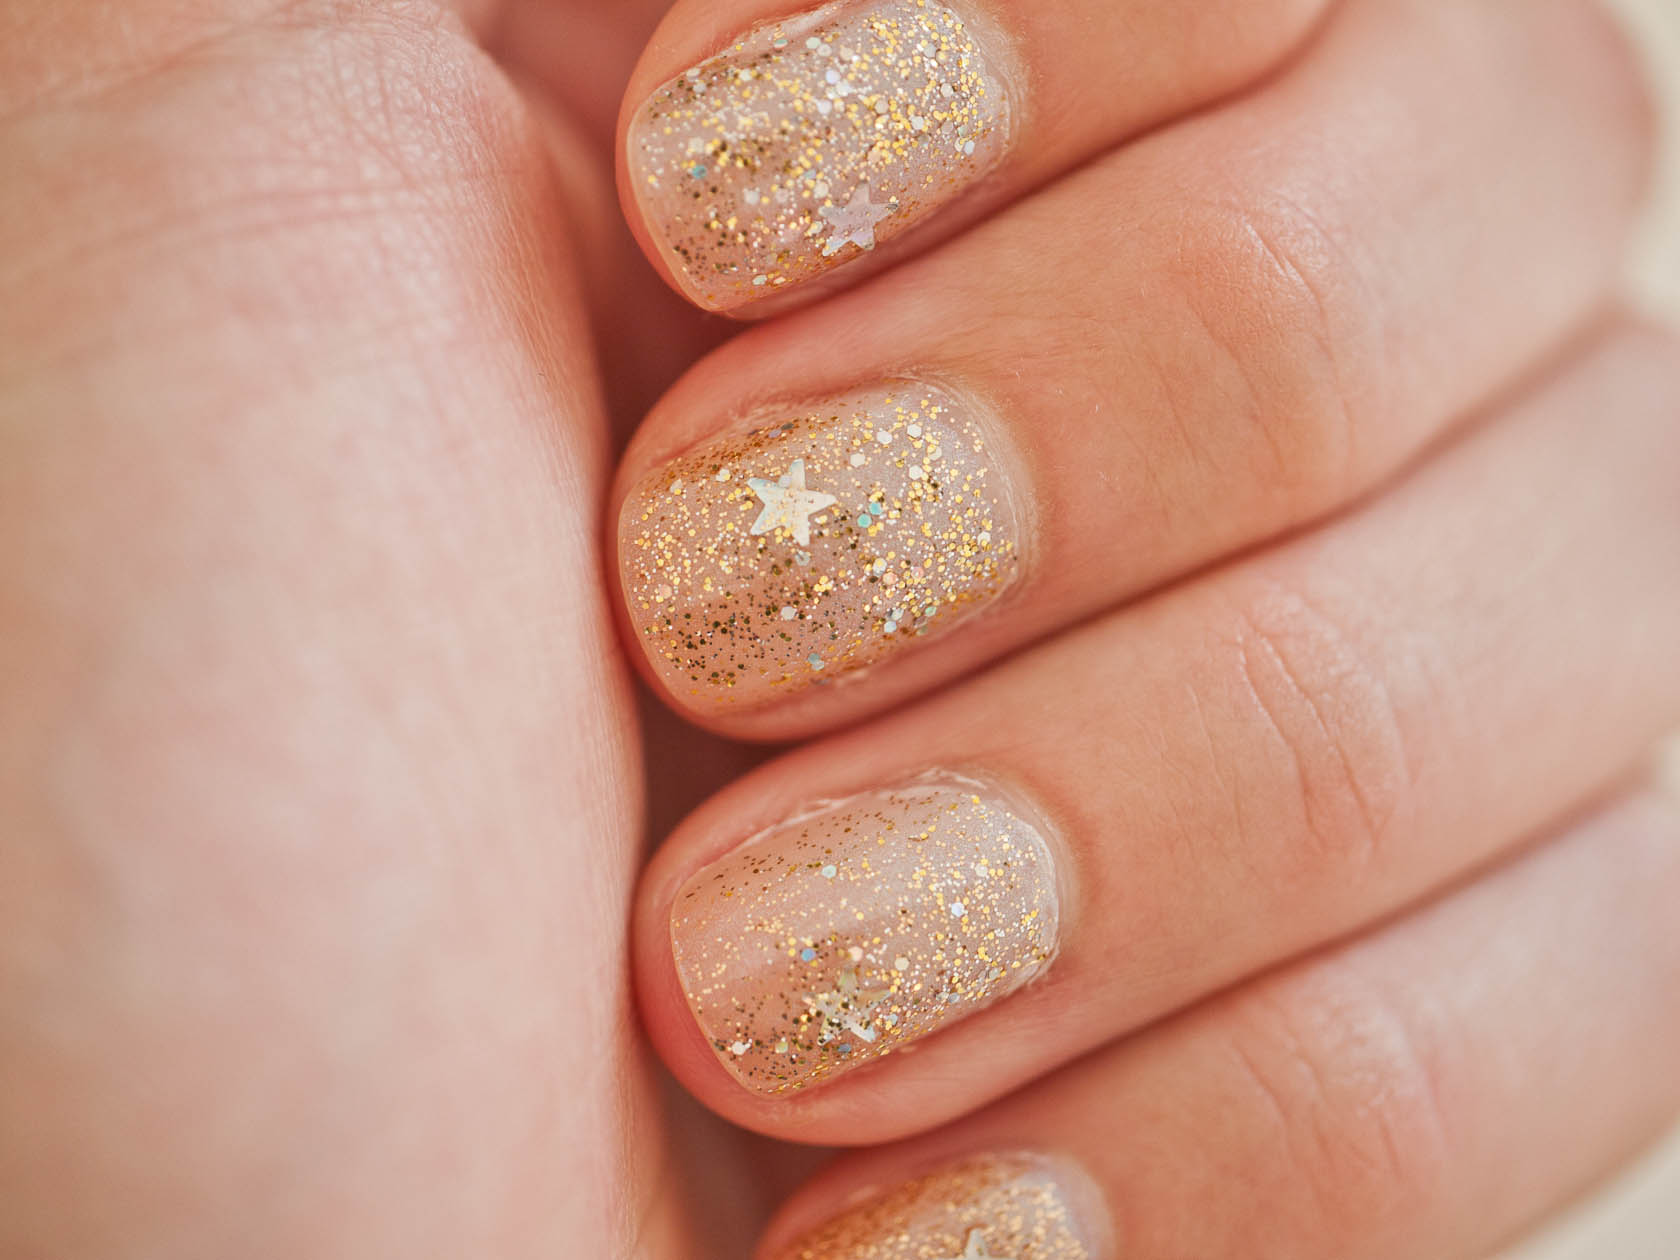 nail art designs with gold and silver glitter | fashion belief